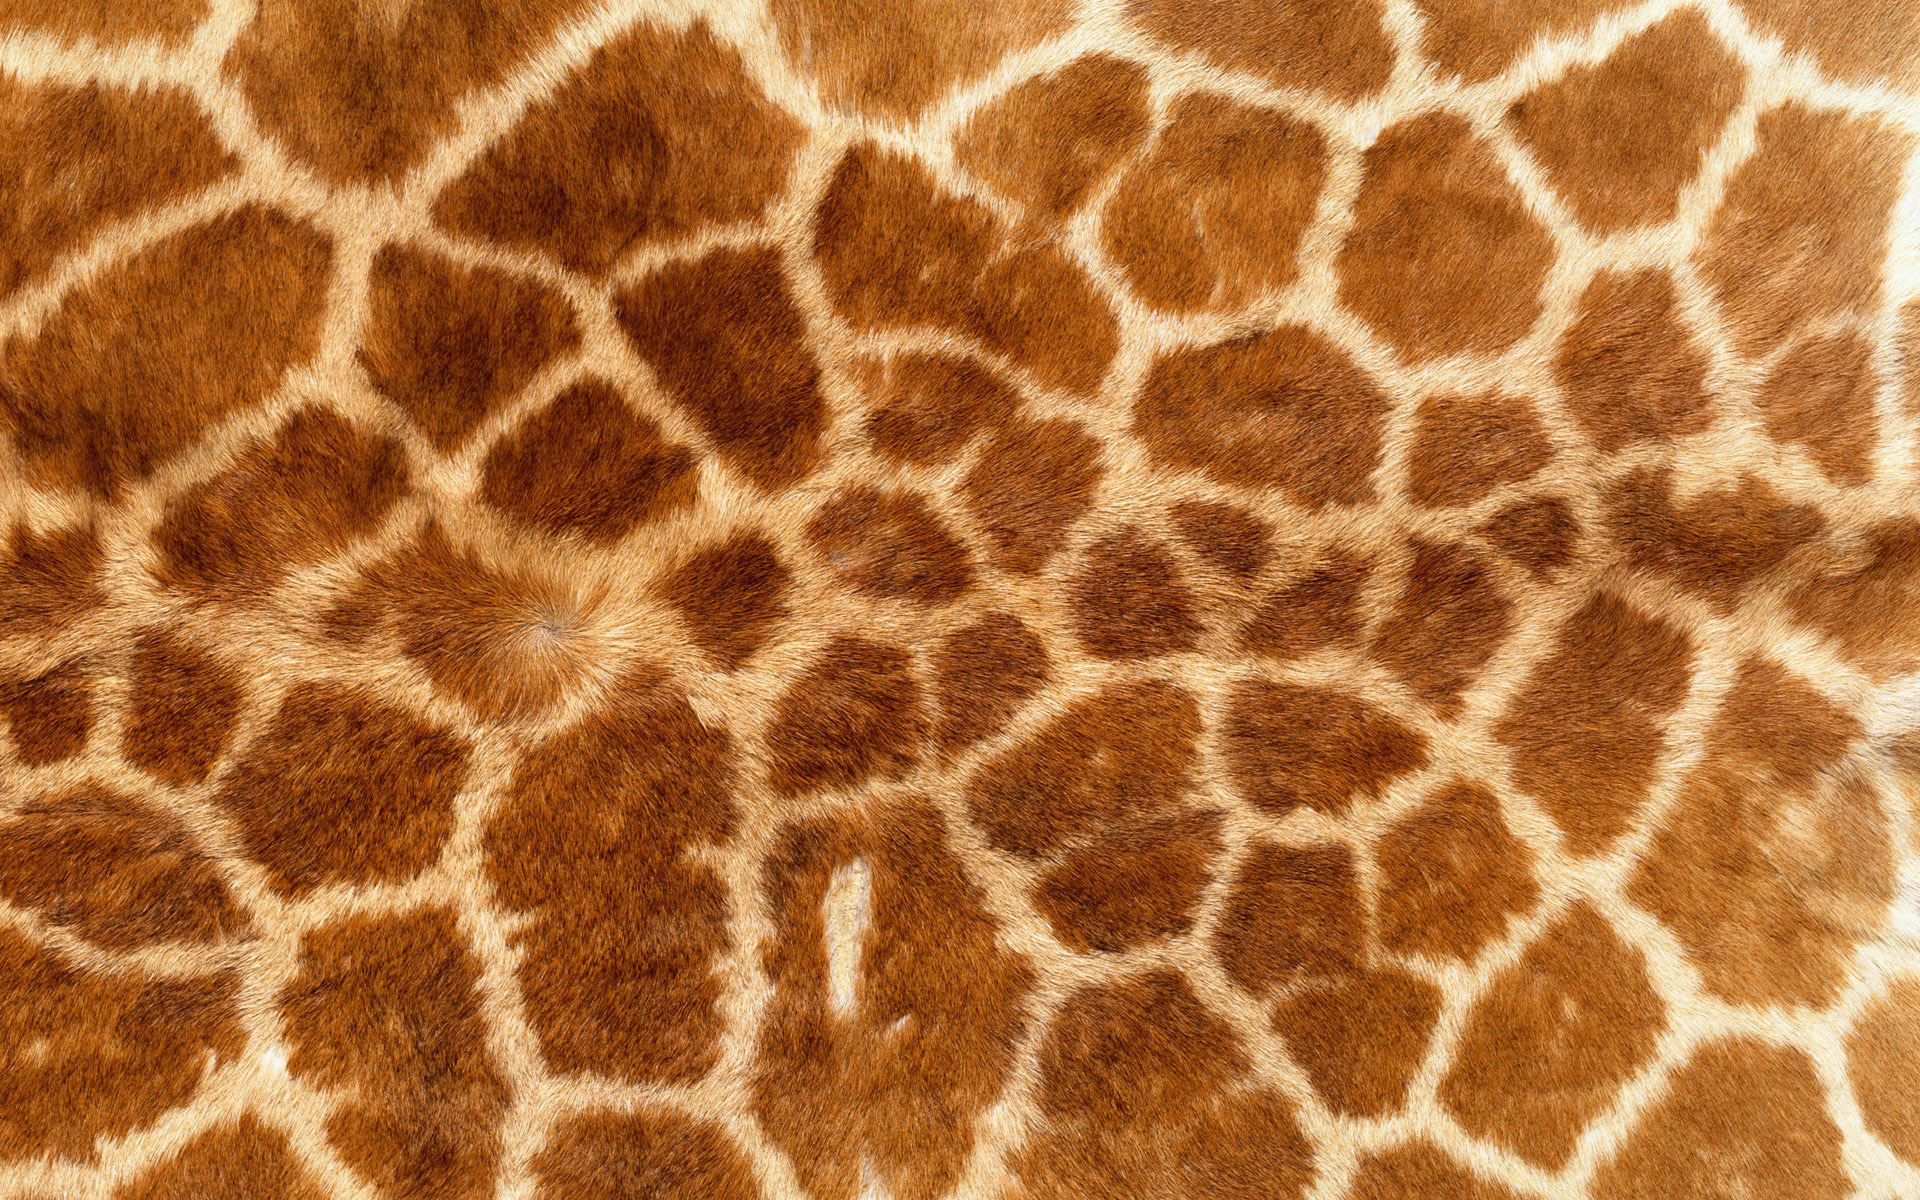 download, texture giraffe, photo, background